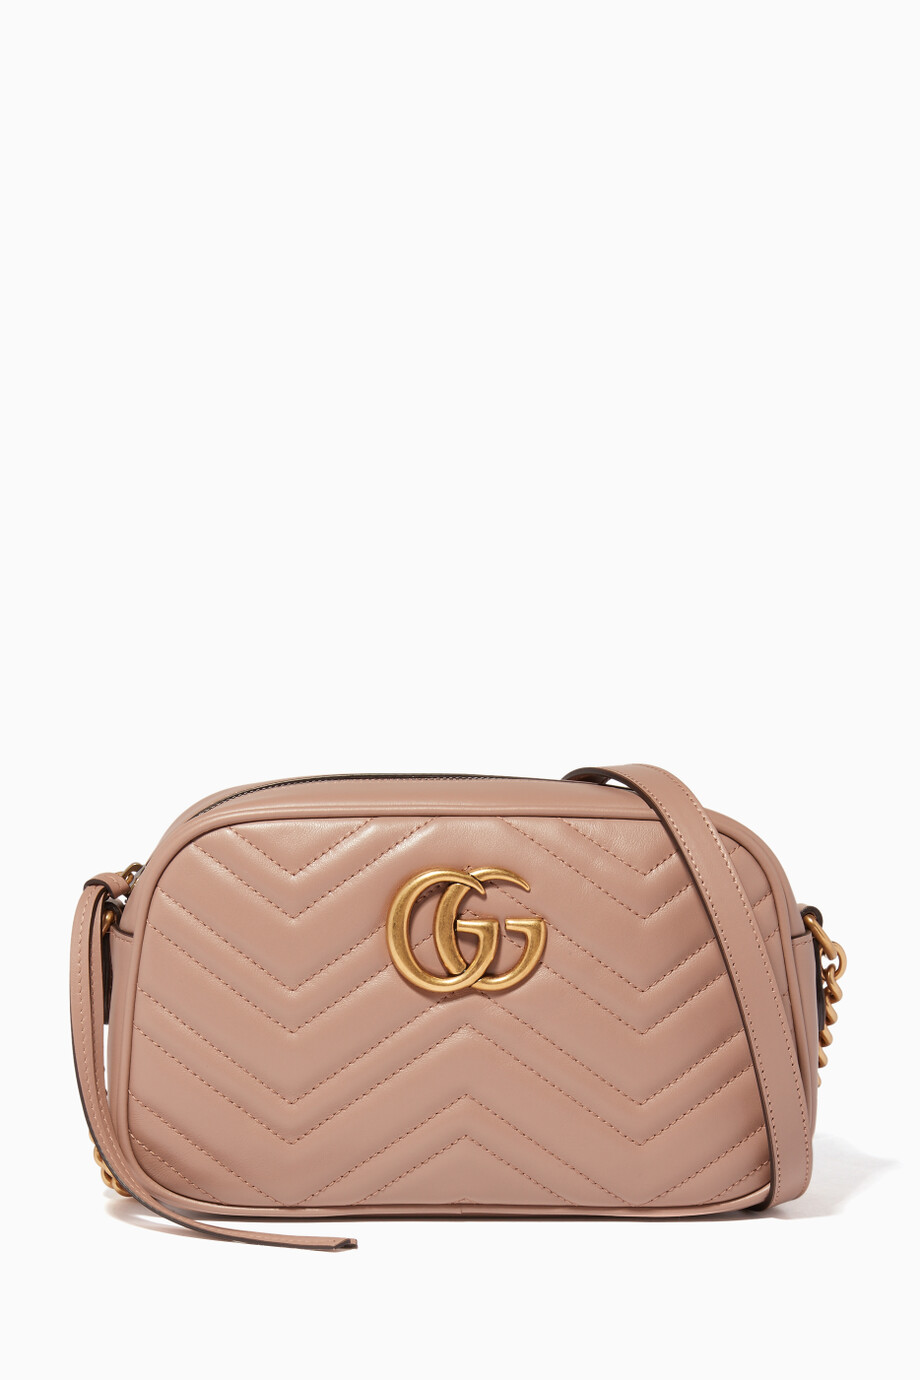 ed0d709ee6a7bf Shop Gucci Neutral Light-Pink GG Marmont 2.0 Camera Bag for Women ...